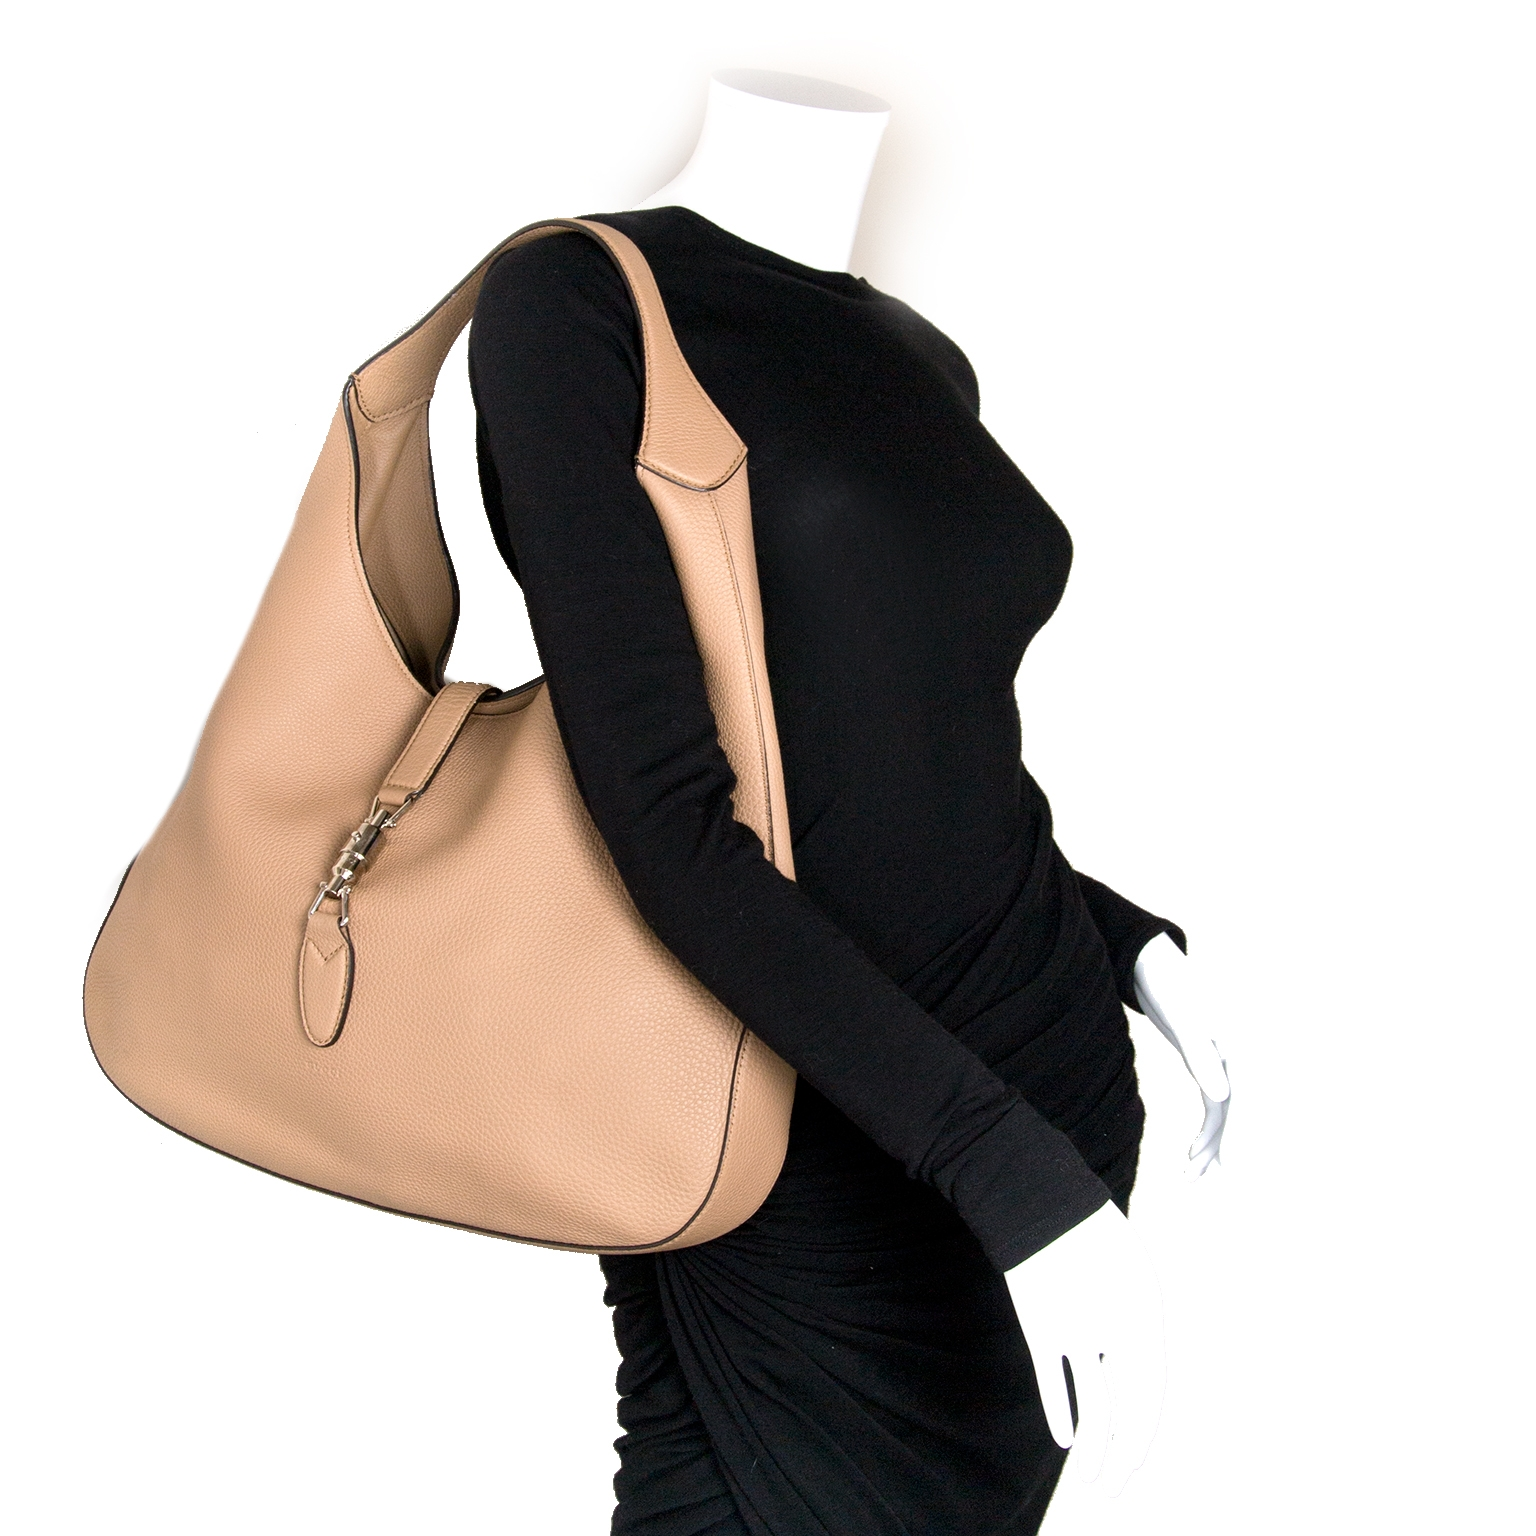 Gucci Jackie Camel Leather Hobo Bag for the best price at Labellov